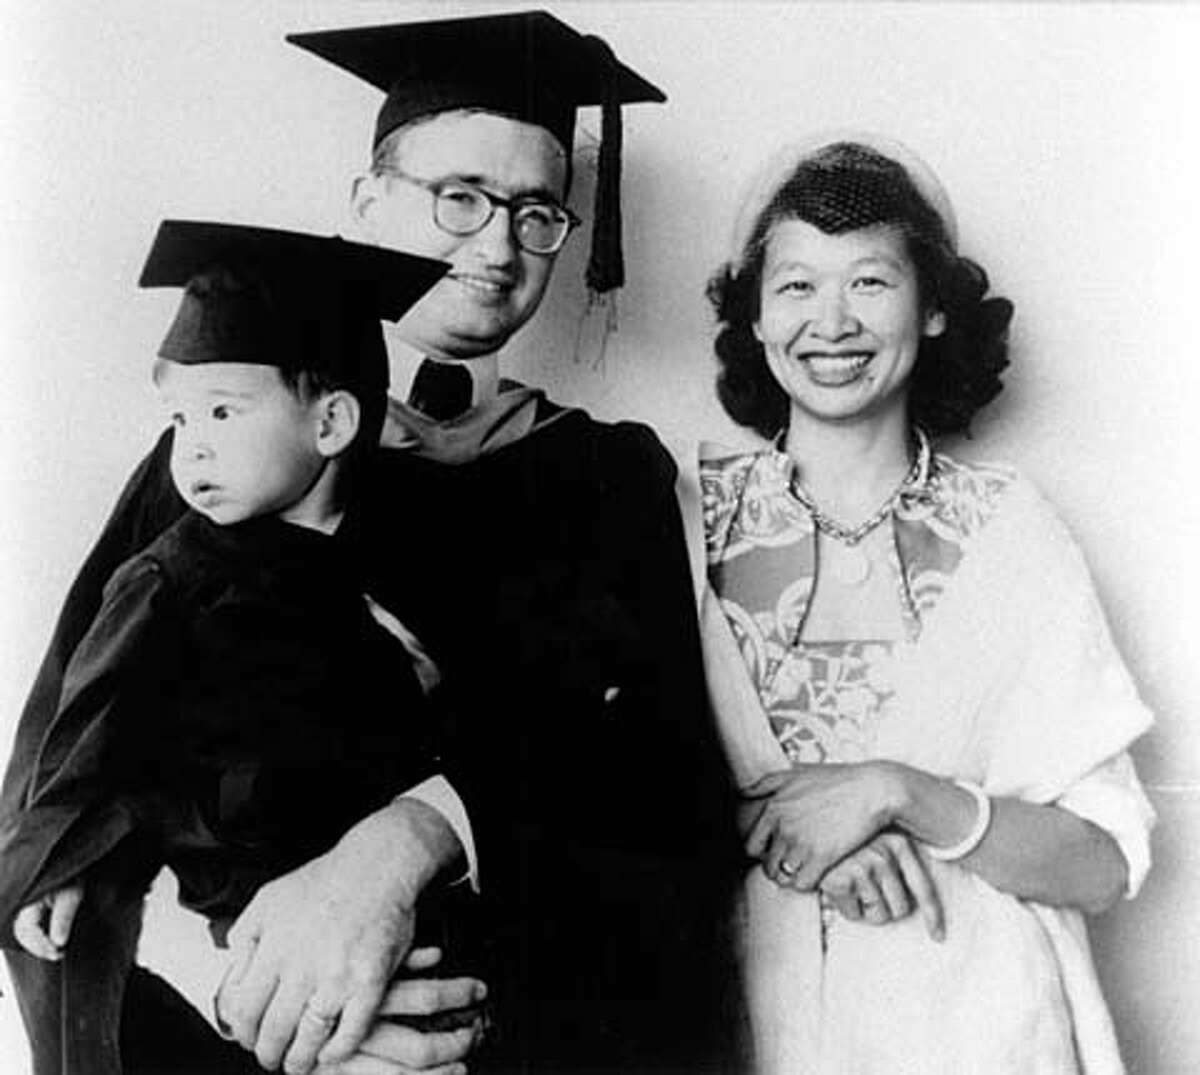 Robert Wilkinson, at his 1953 graduation from UC Berkeley, with wife May-Blossom and son Steve.